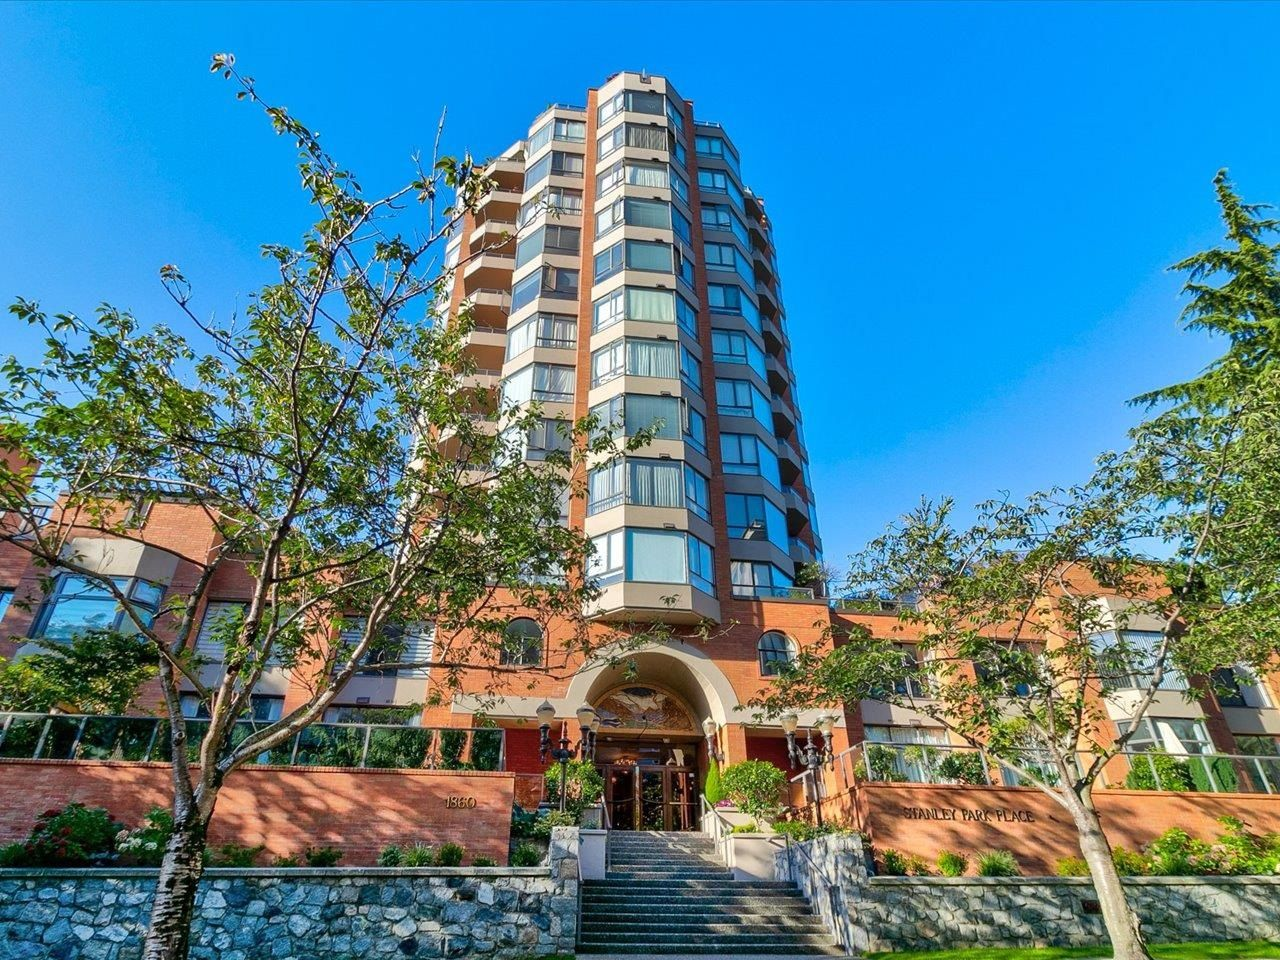 """Main Photo: 204 1860 ROBSON Street in Vancouver: West End VW Condo for sale in """"Stanley Park Place"""" (Vancouver West)  : MLS®# R2619099"""